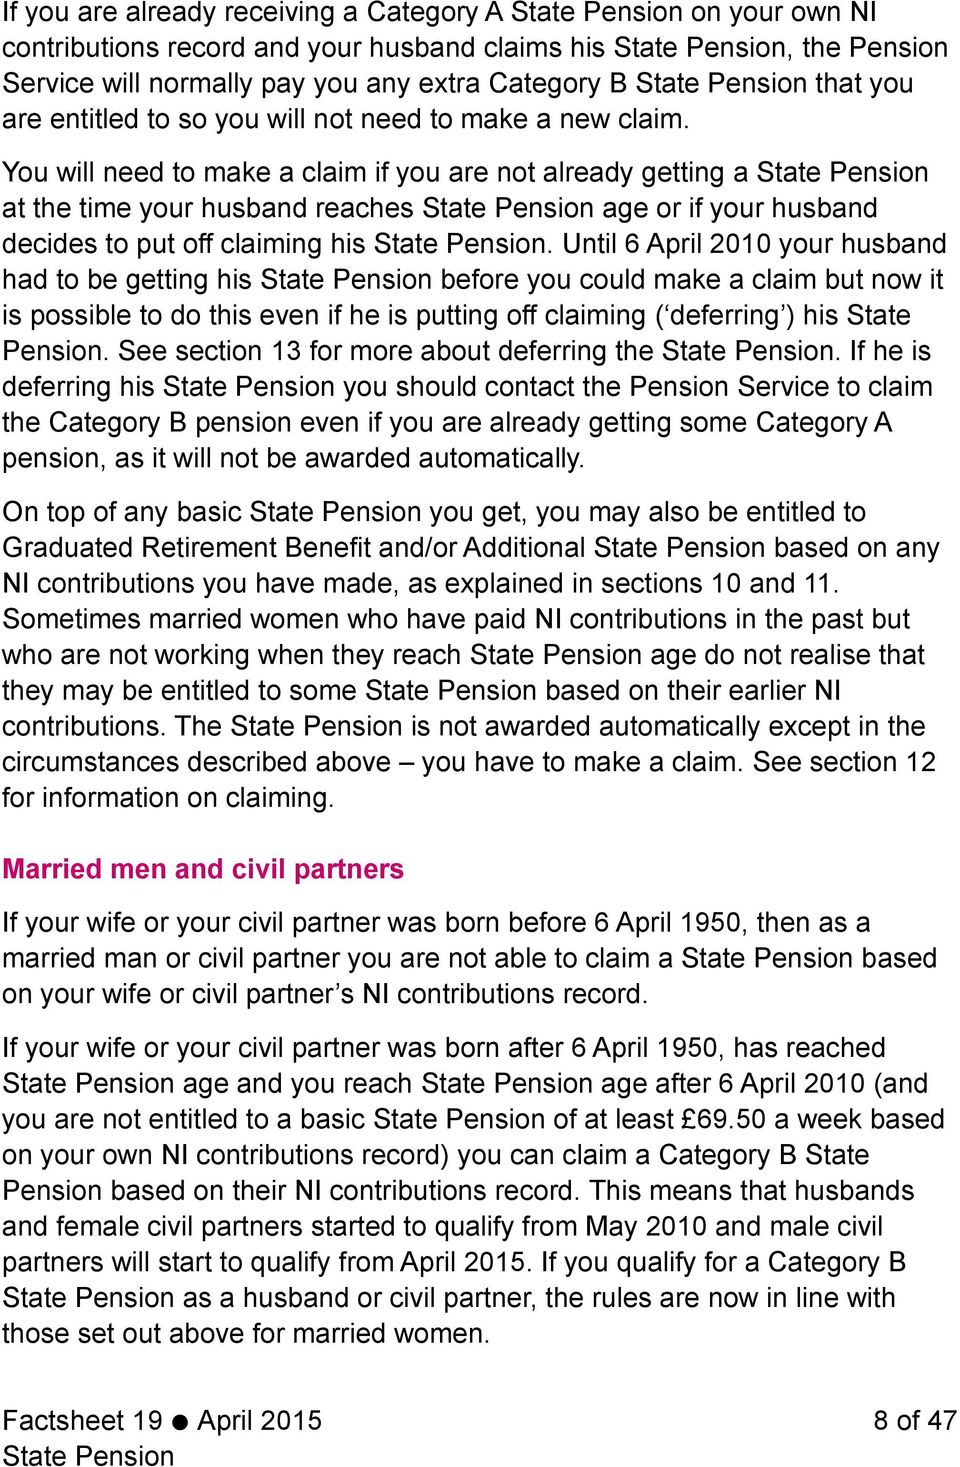 Until 6 April 2010 your husband had to be getting his before you could make a claim but now it is possible to do this even if he is putting off claiming ( deferring ) his State Pension.